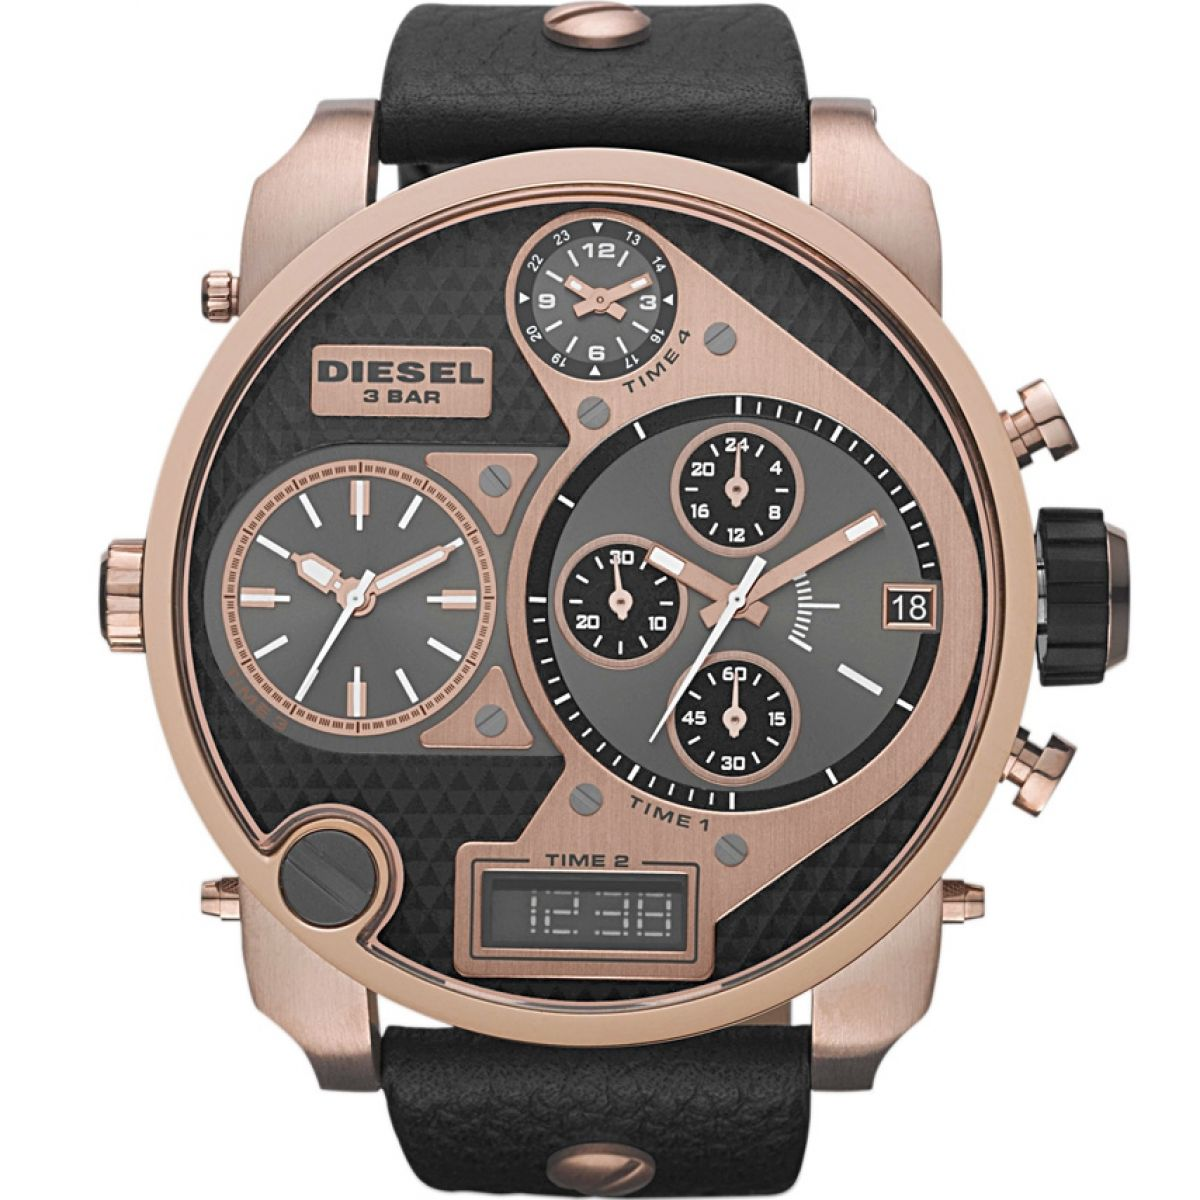 plain is recalls thing technogog the first analog of when quartz mens watches top band i box smell watch curren review leather tan men and was bottom classic on noticed black s opened